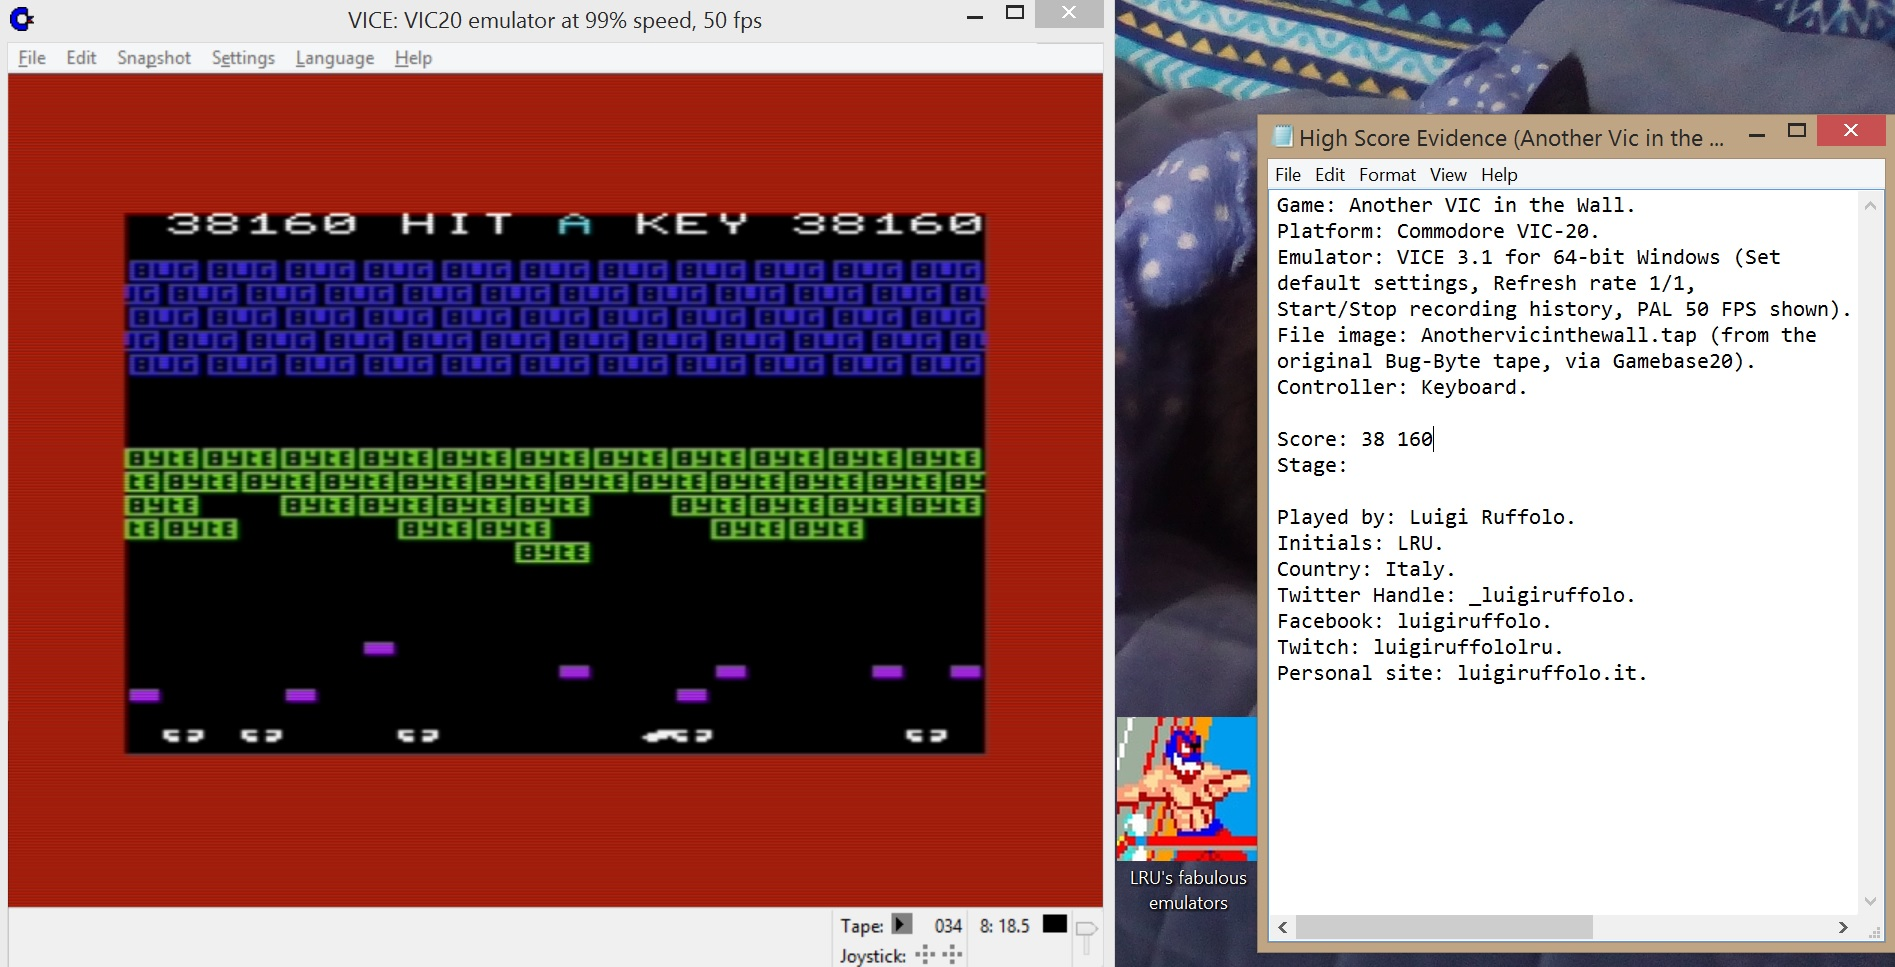 LuigiRuffolo: Another Vic In The Wall (Commodore VIC-20 Emulated) 38,160 points on 2020-07-04 05:10:23